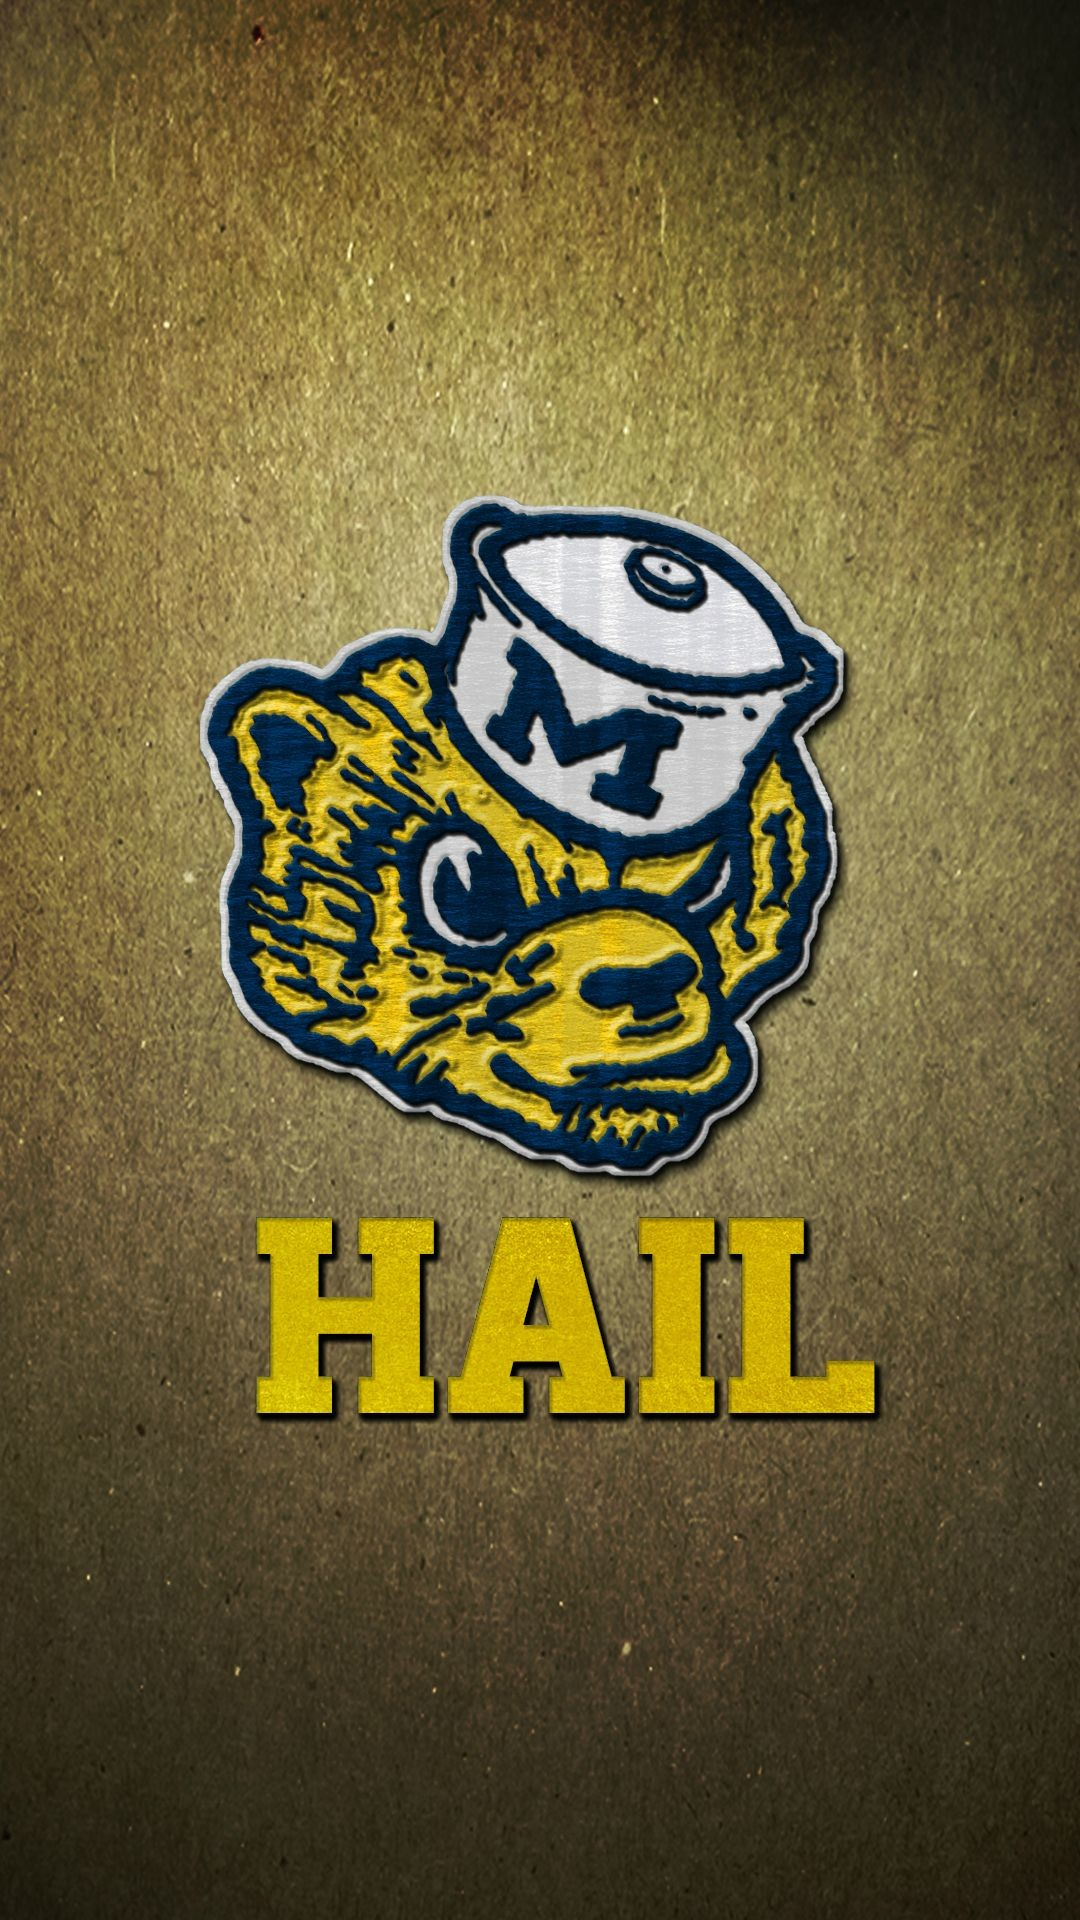 1080x1920 MICHIGAN WOLVERINES college football wallpaper x | HD Wallpapers |  Pinterest | Michigan wolverines and Wallpaper